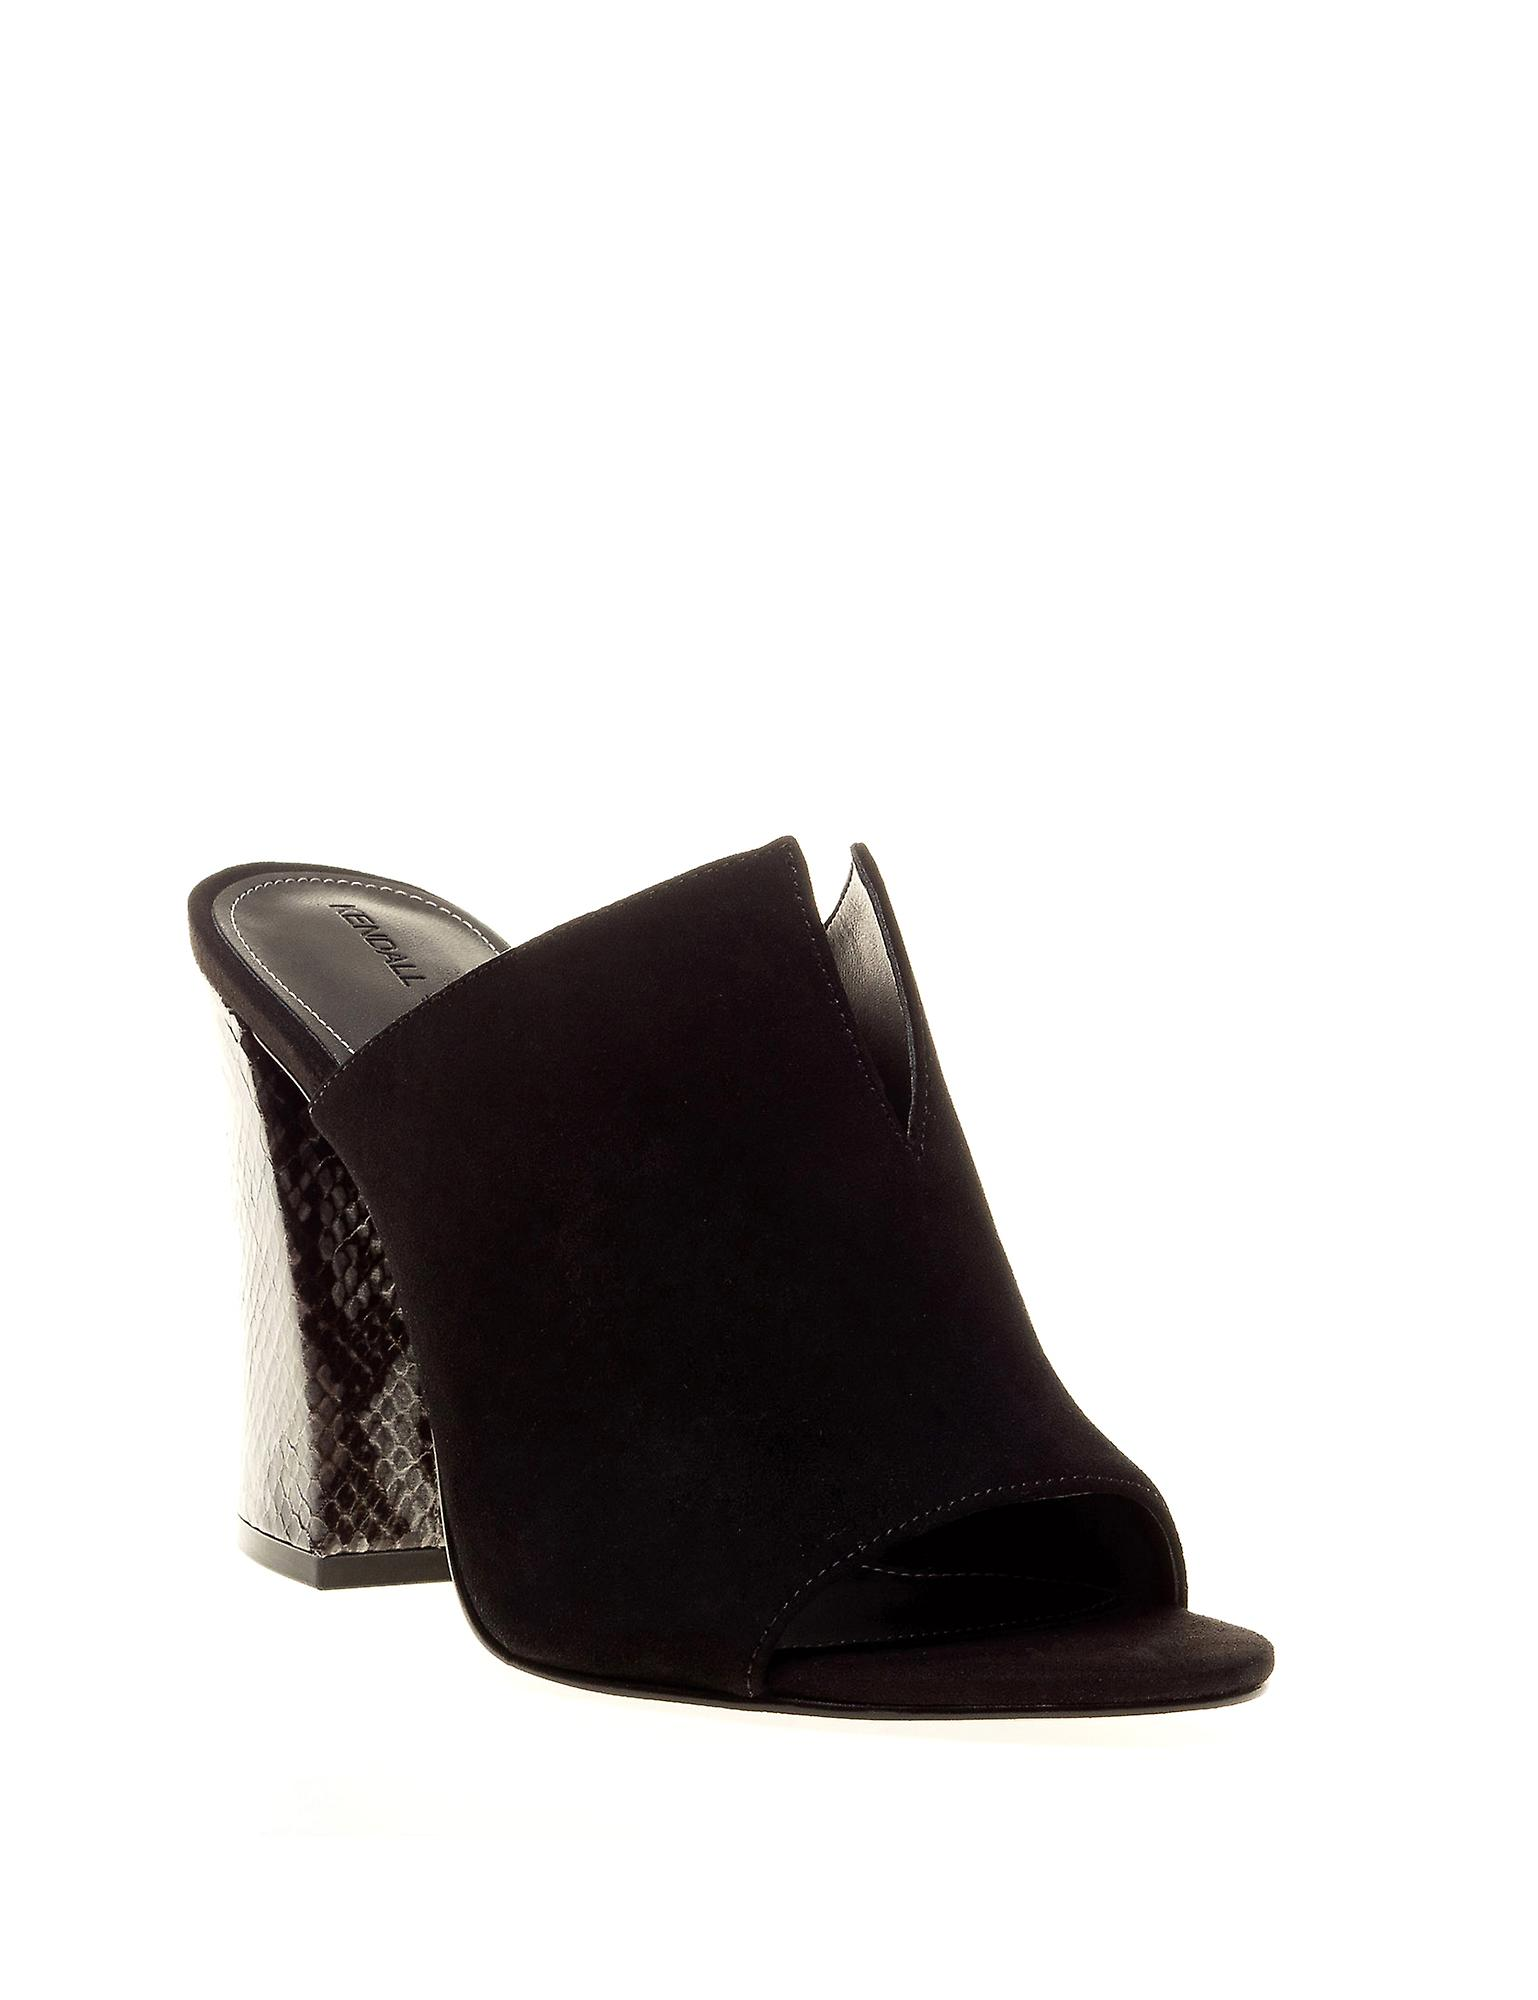 Kendall + Kylie Women's Joely-01 Platforms